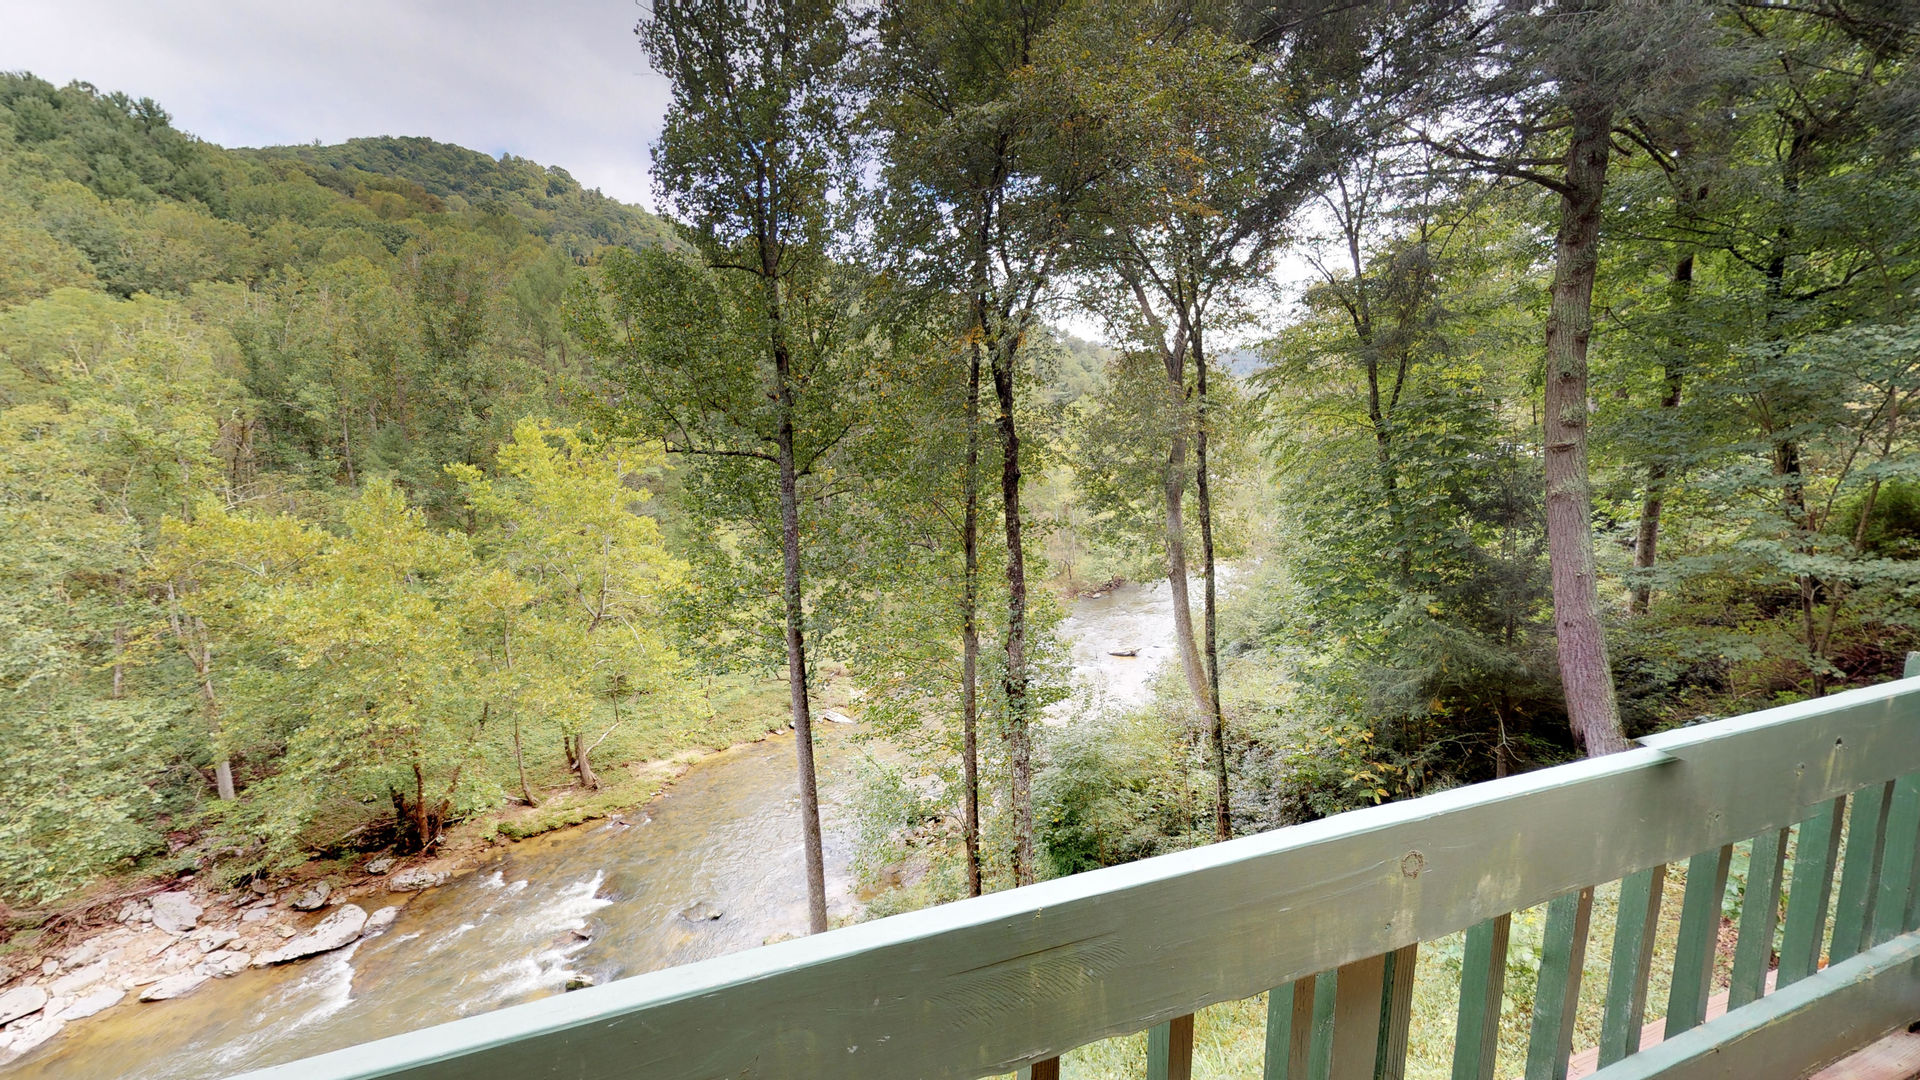 View of the river from the deck